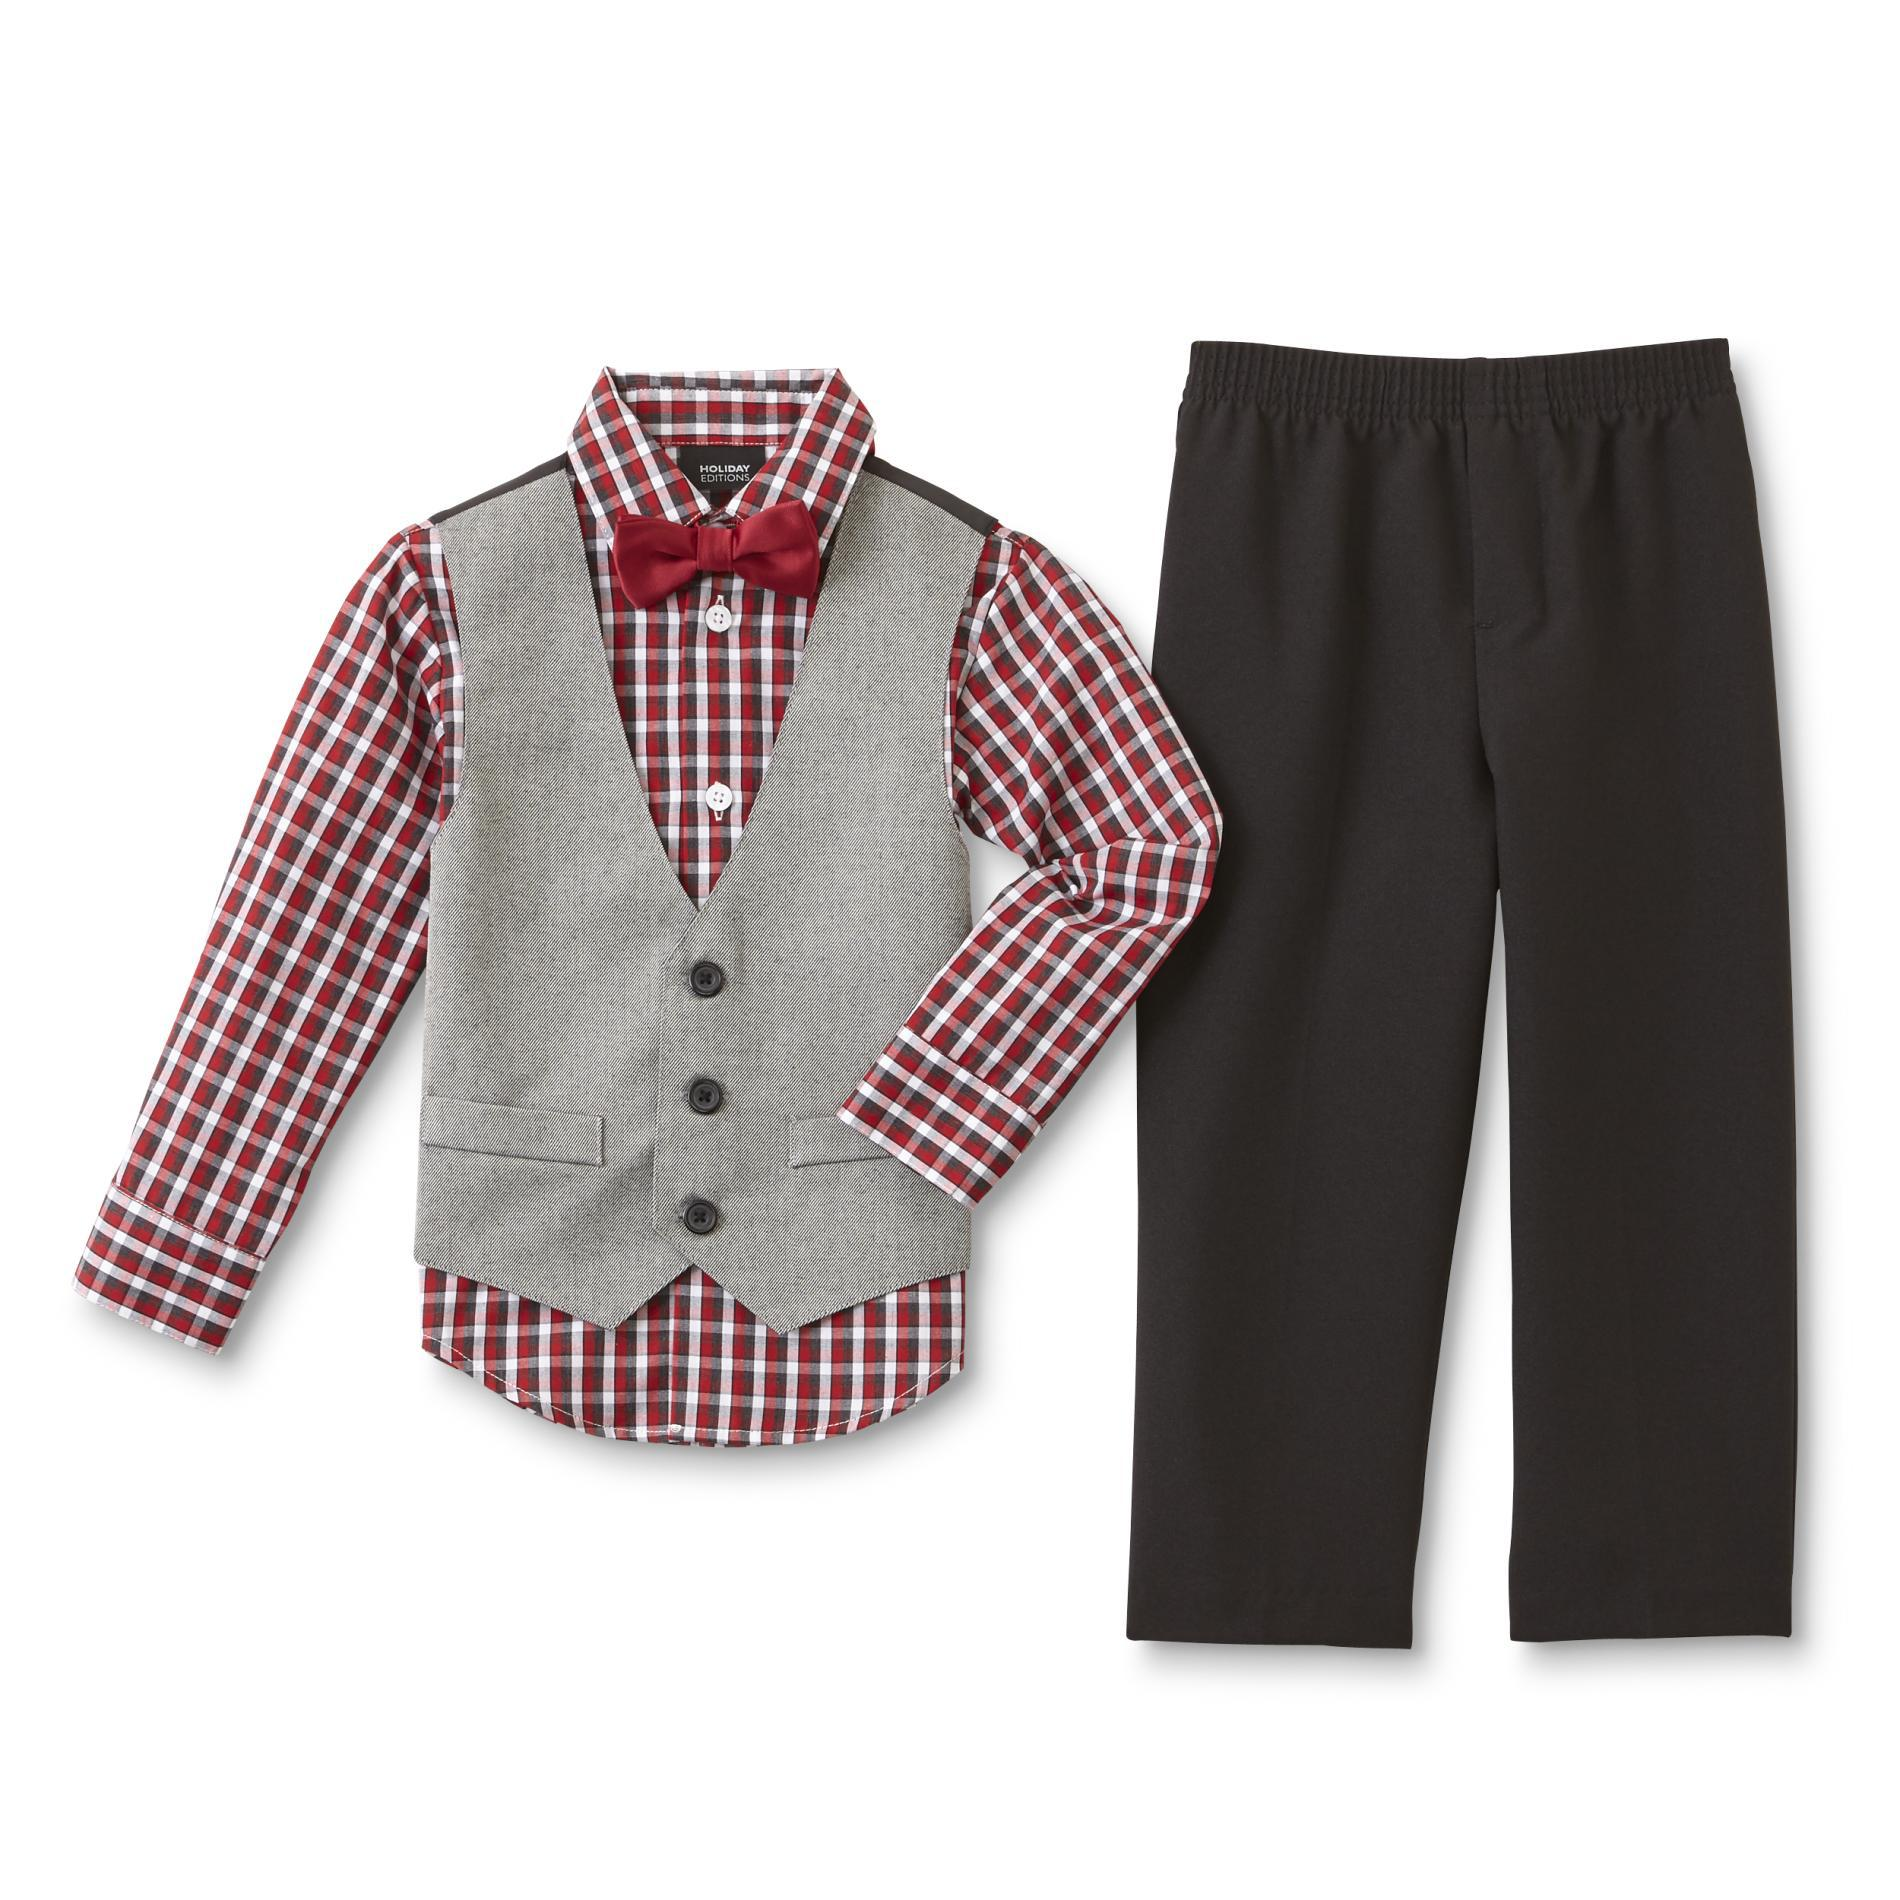 Holiday Editions Infant & Toddler Boys' Shirt, Pants, Vest & Bow Tie - Checkered